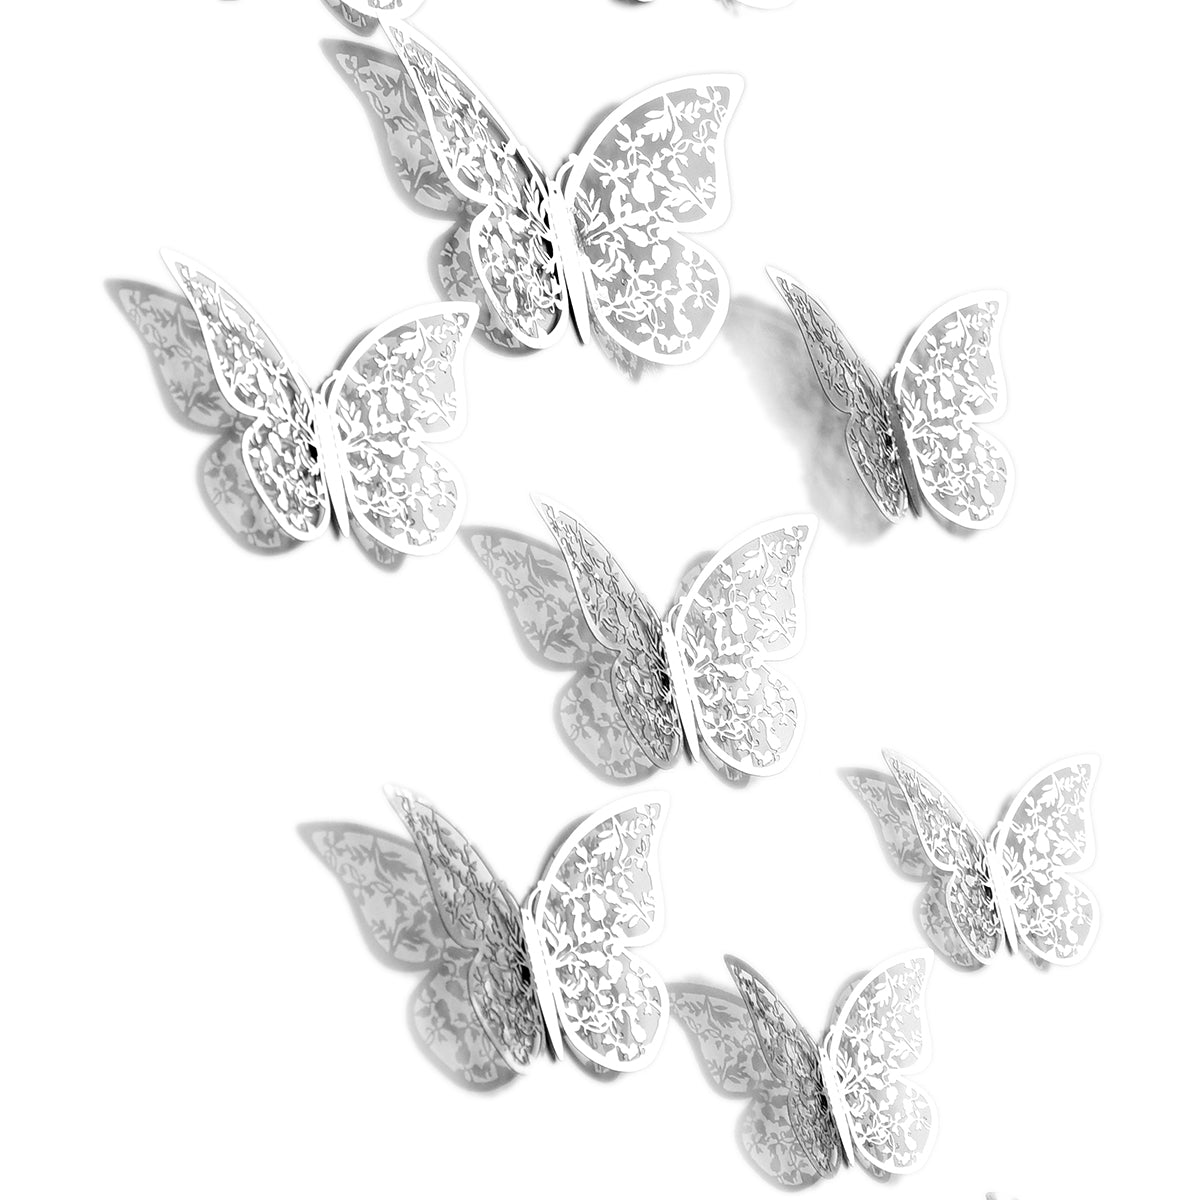 7 pieces silver butterflies with white background